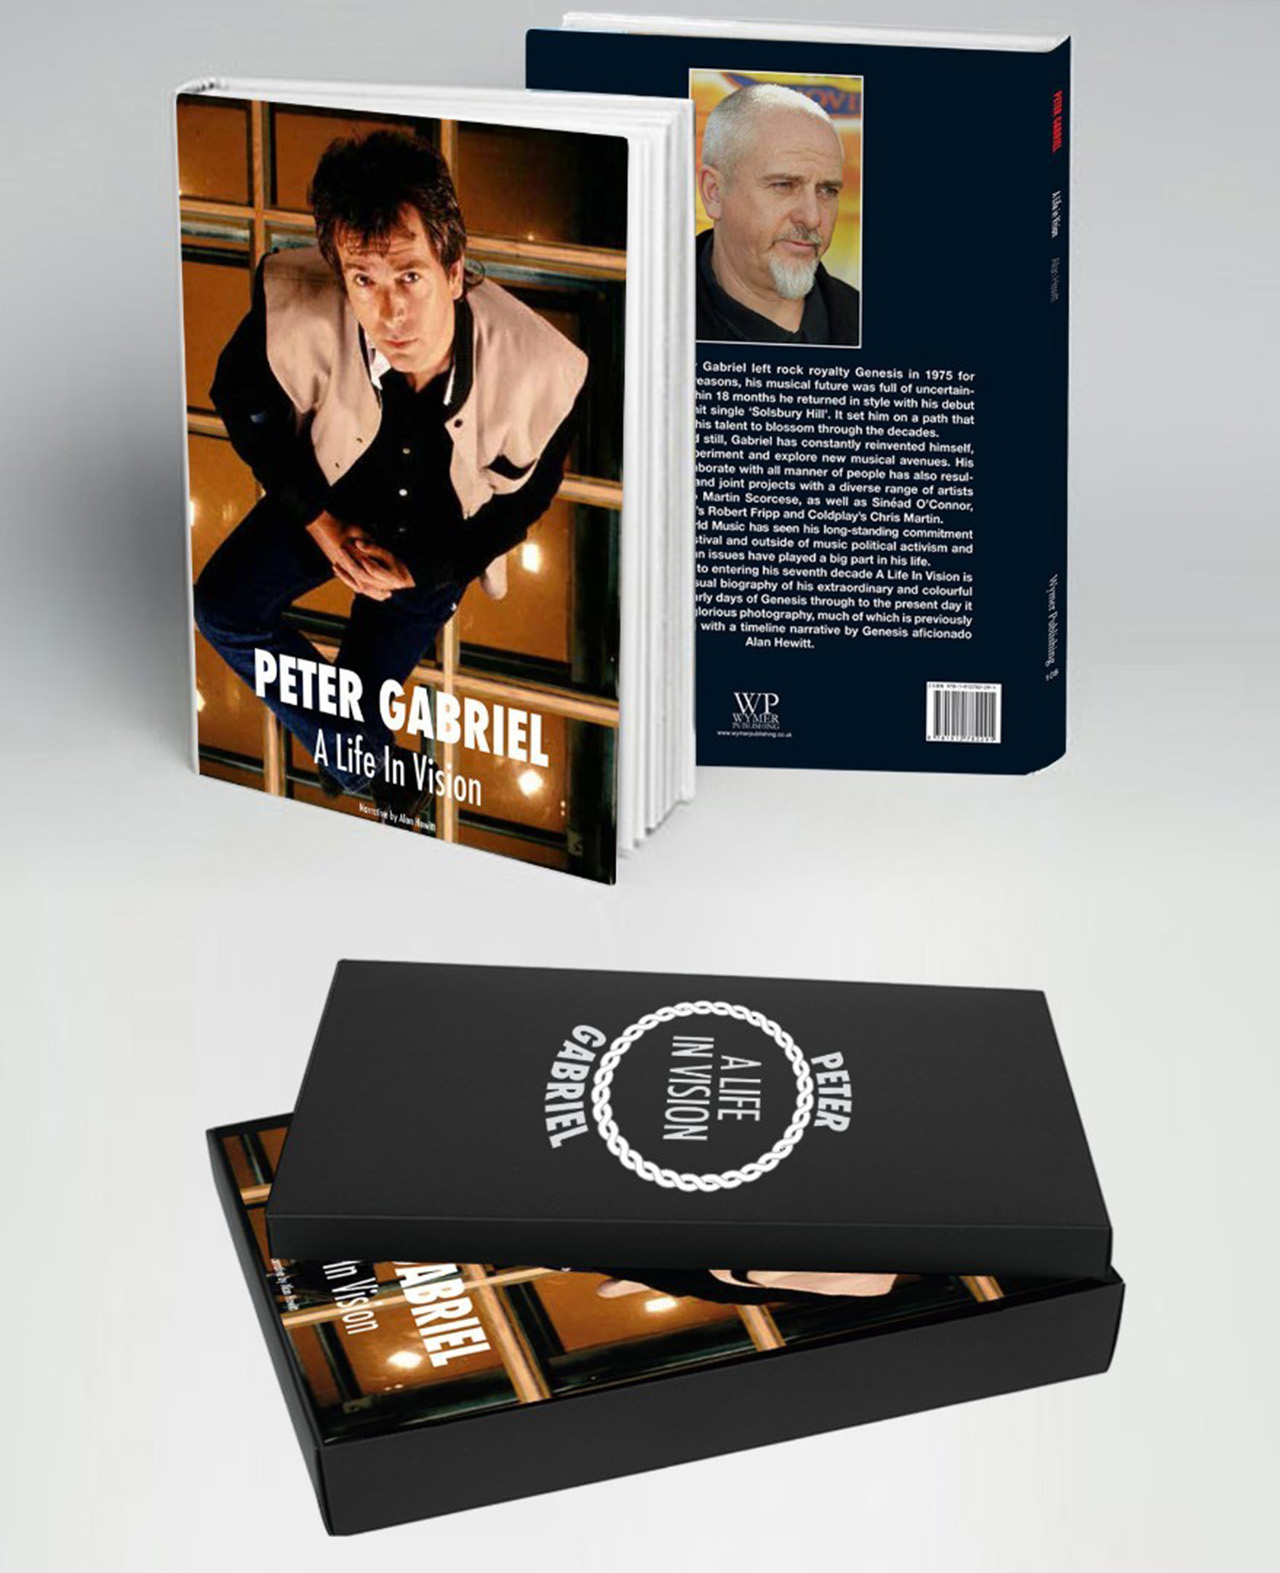 Peter Gabriel photo book will explore singer's career from Genesis to present day   Louder